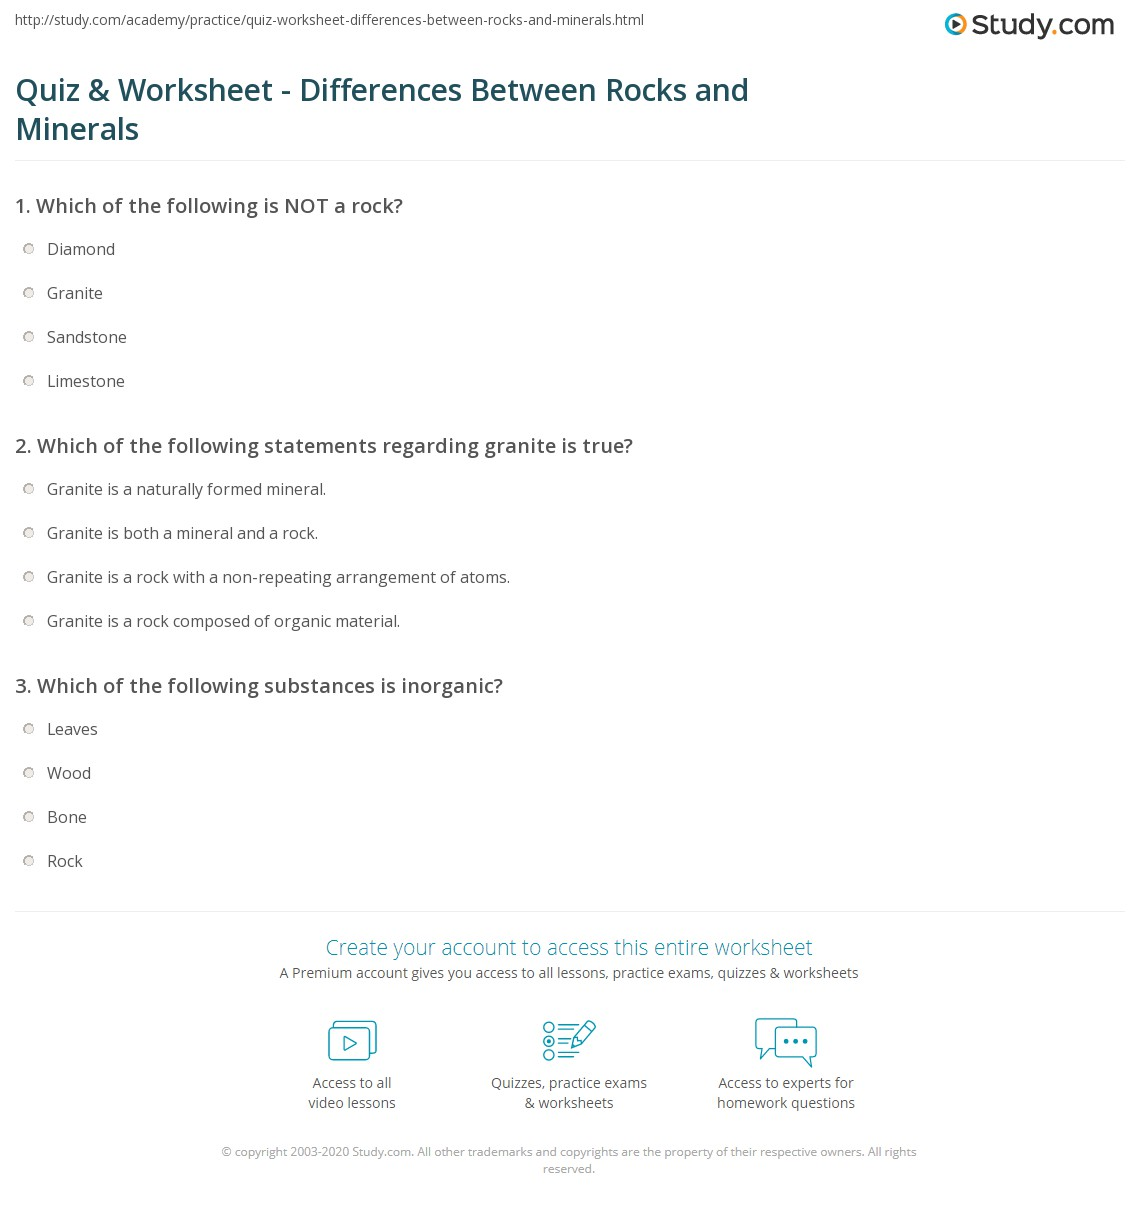 Quiz Worksheet Differences Between Rocks And Minerals Study